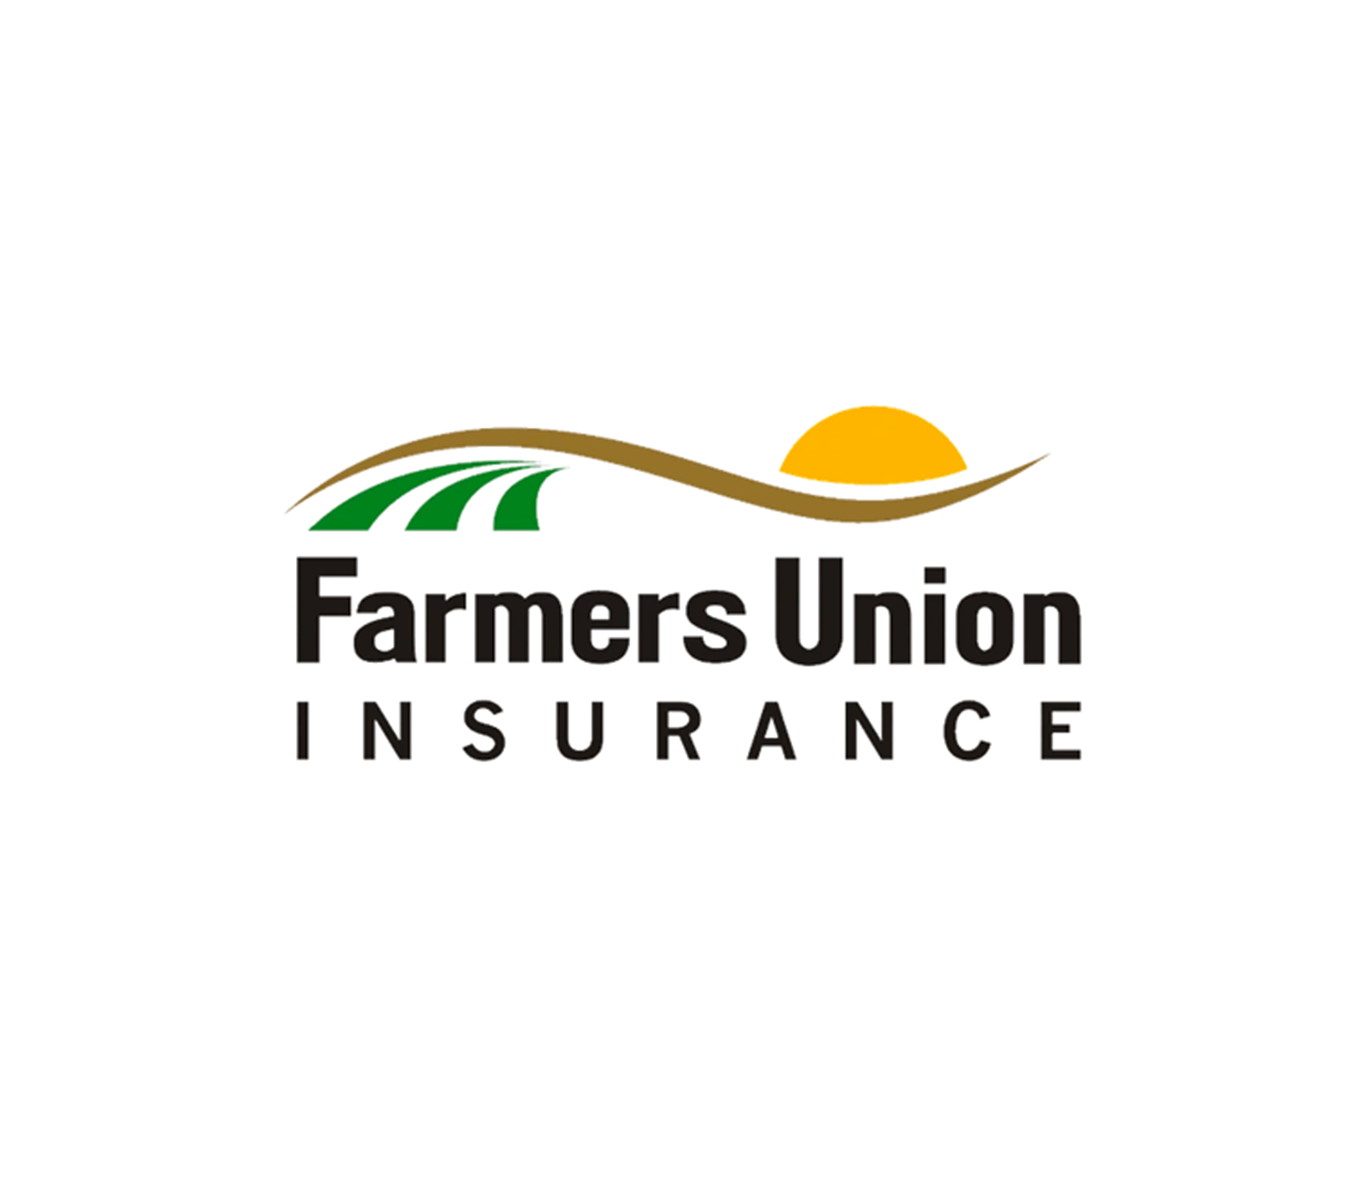 Farmers Union Insurance customer logo